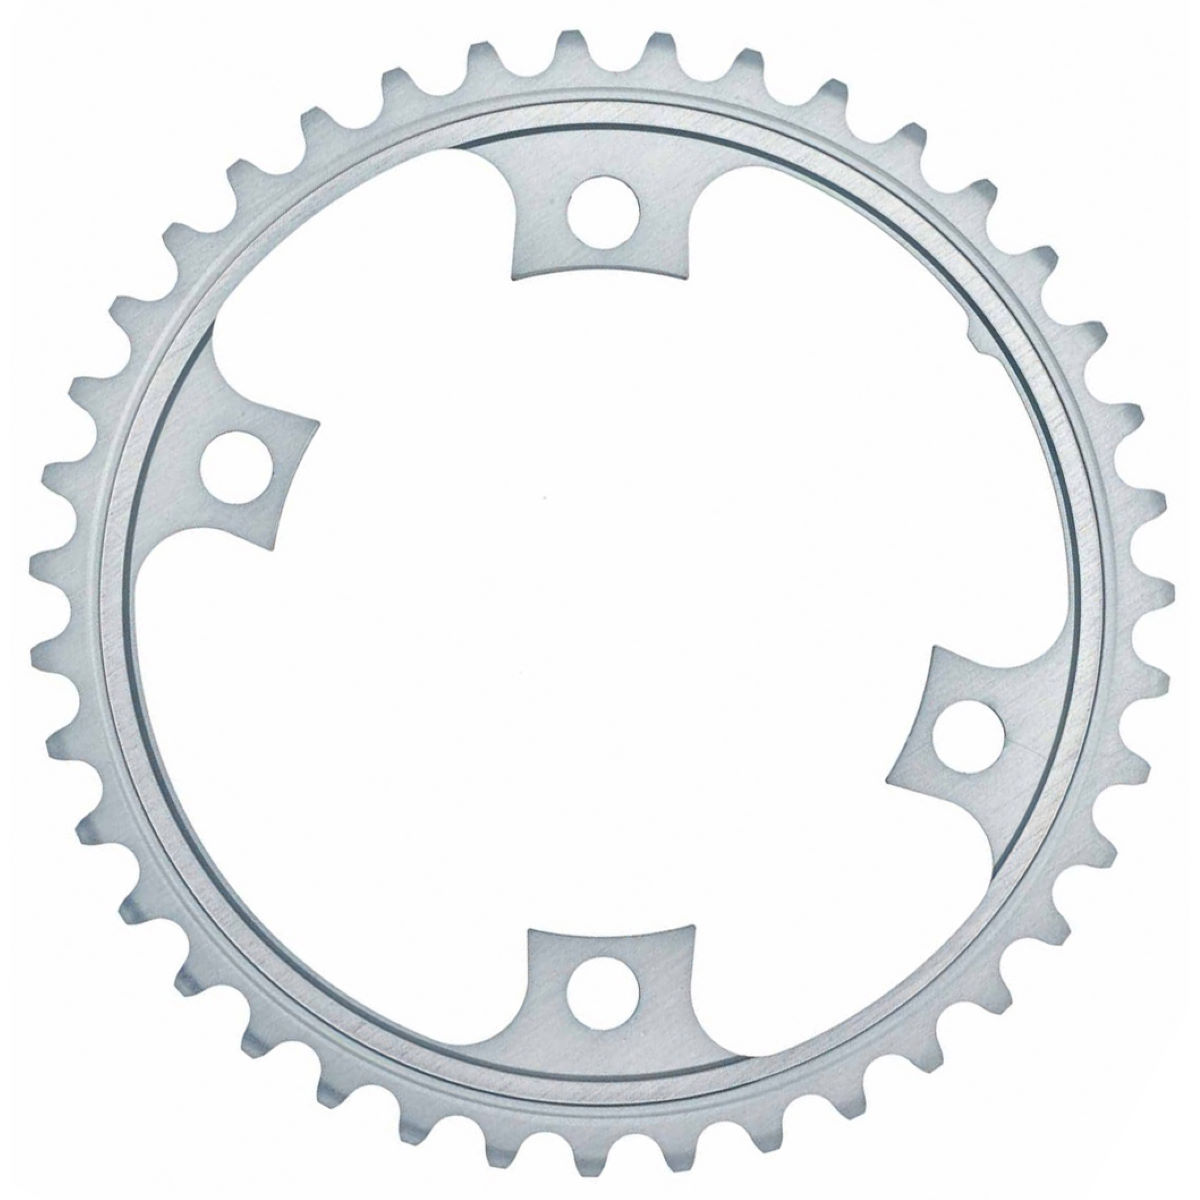 Shimano 105 Fc5800 11sp Double Chainrings - 39t 11 Speed Silver